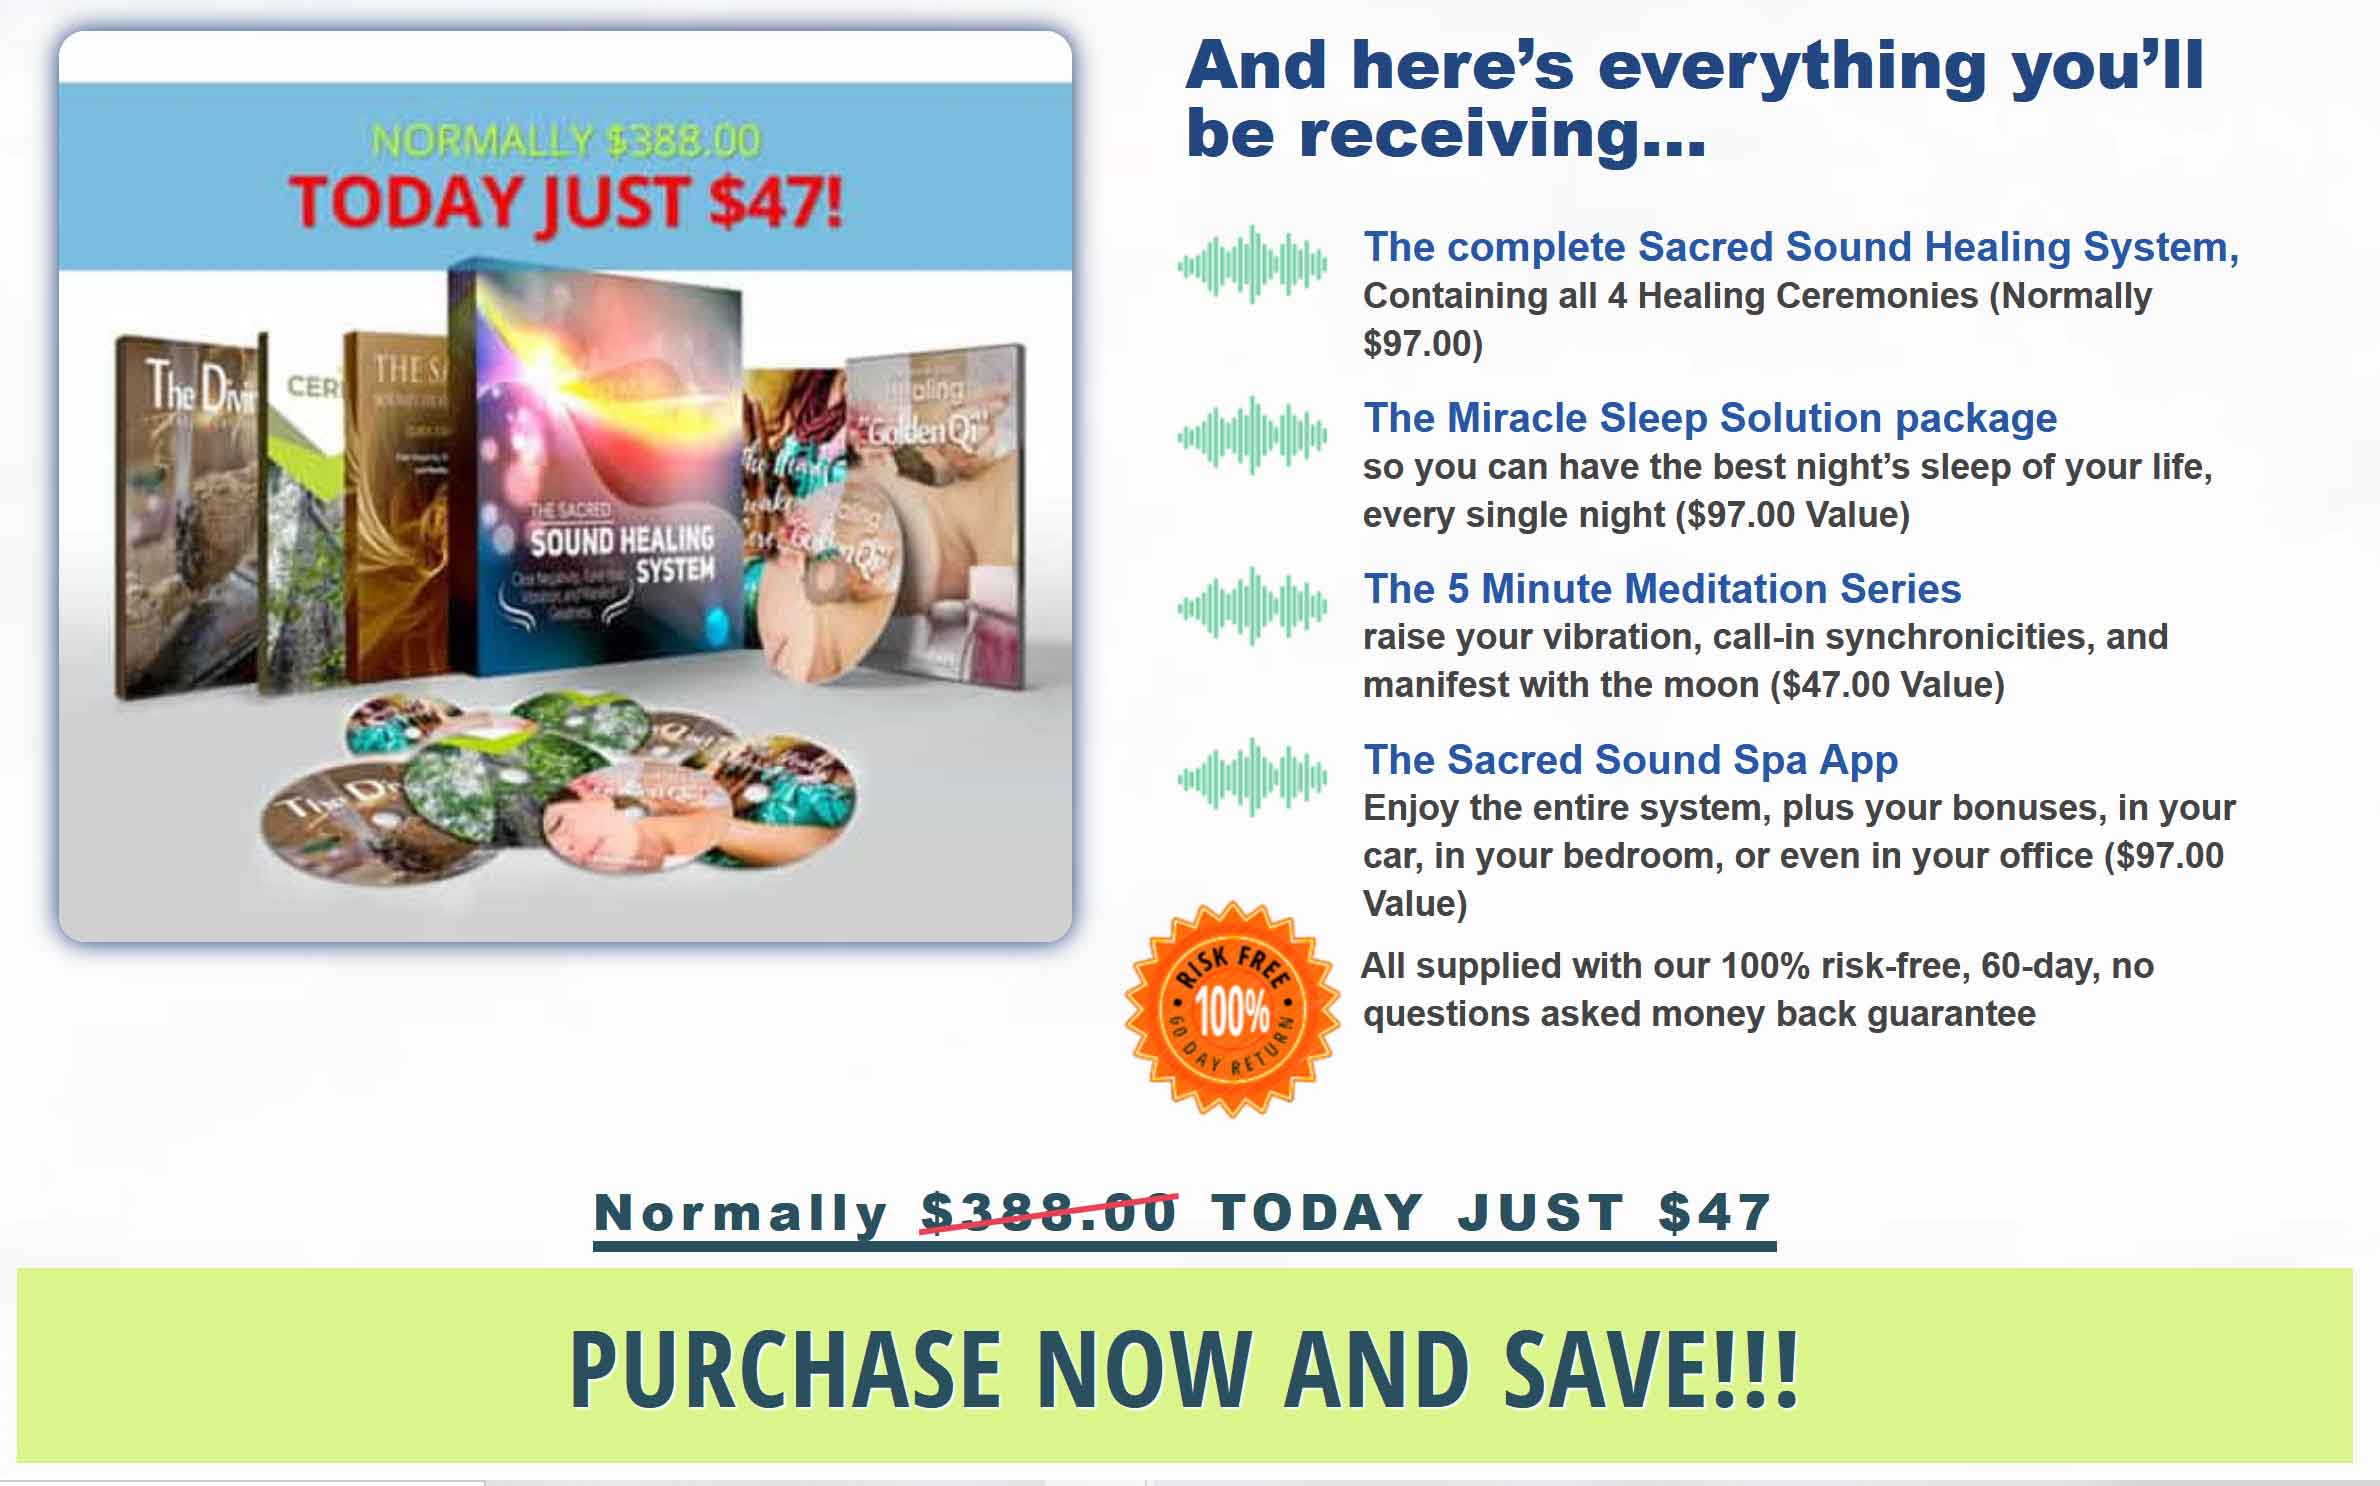 Get your copy of the Sacred Sound Healing System now.